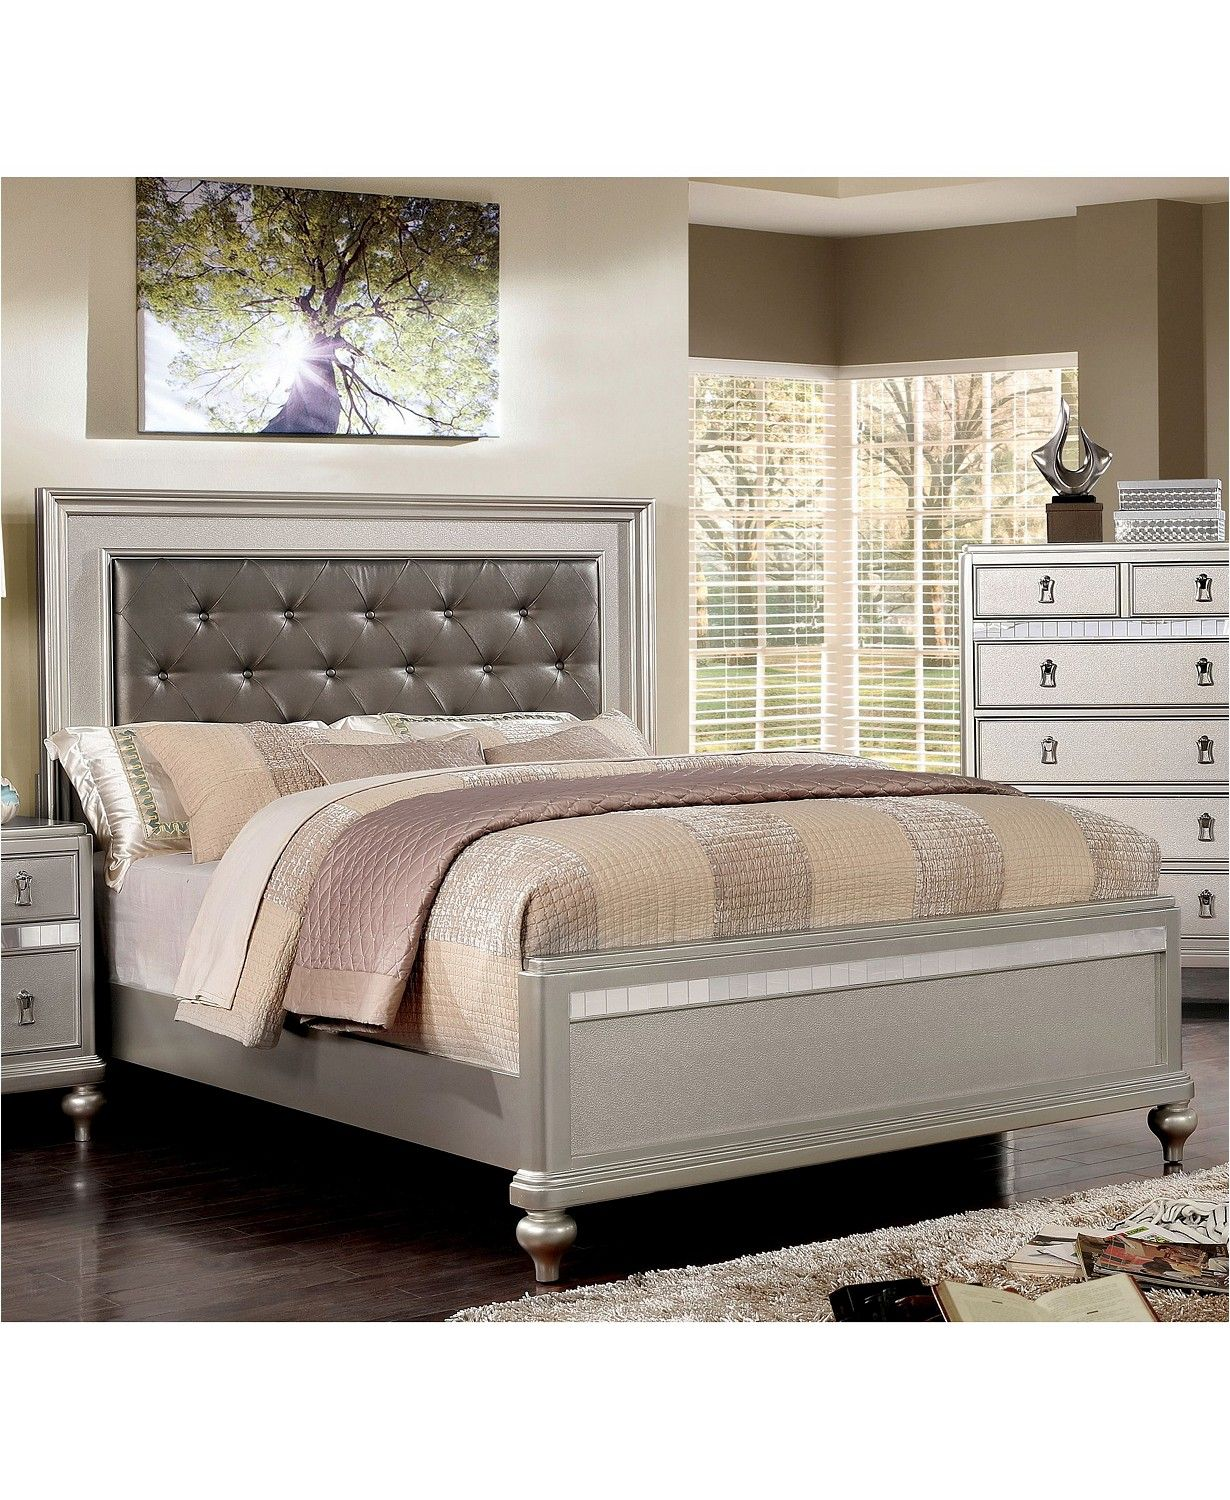 Furniture of America Appell Transitional Queen Bed